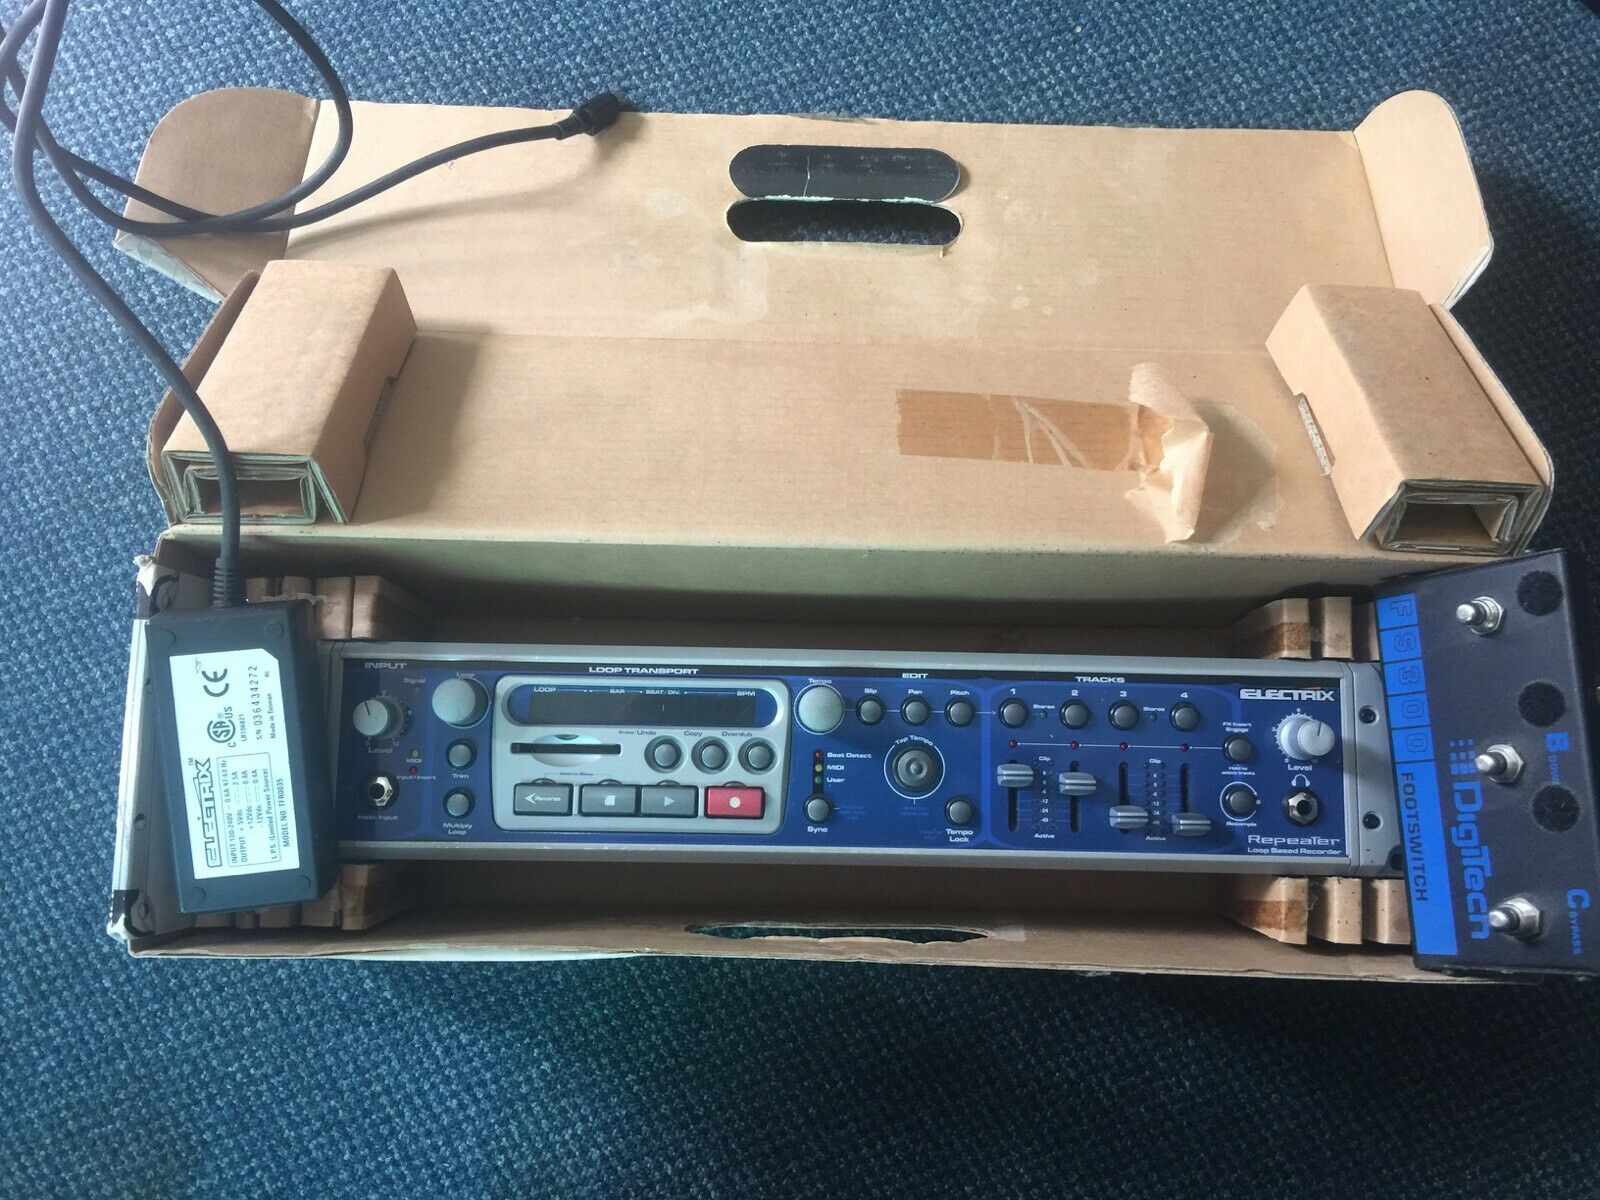 Electrix Repeater, live Looper, Very Good condition